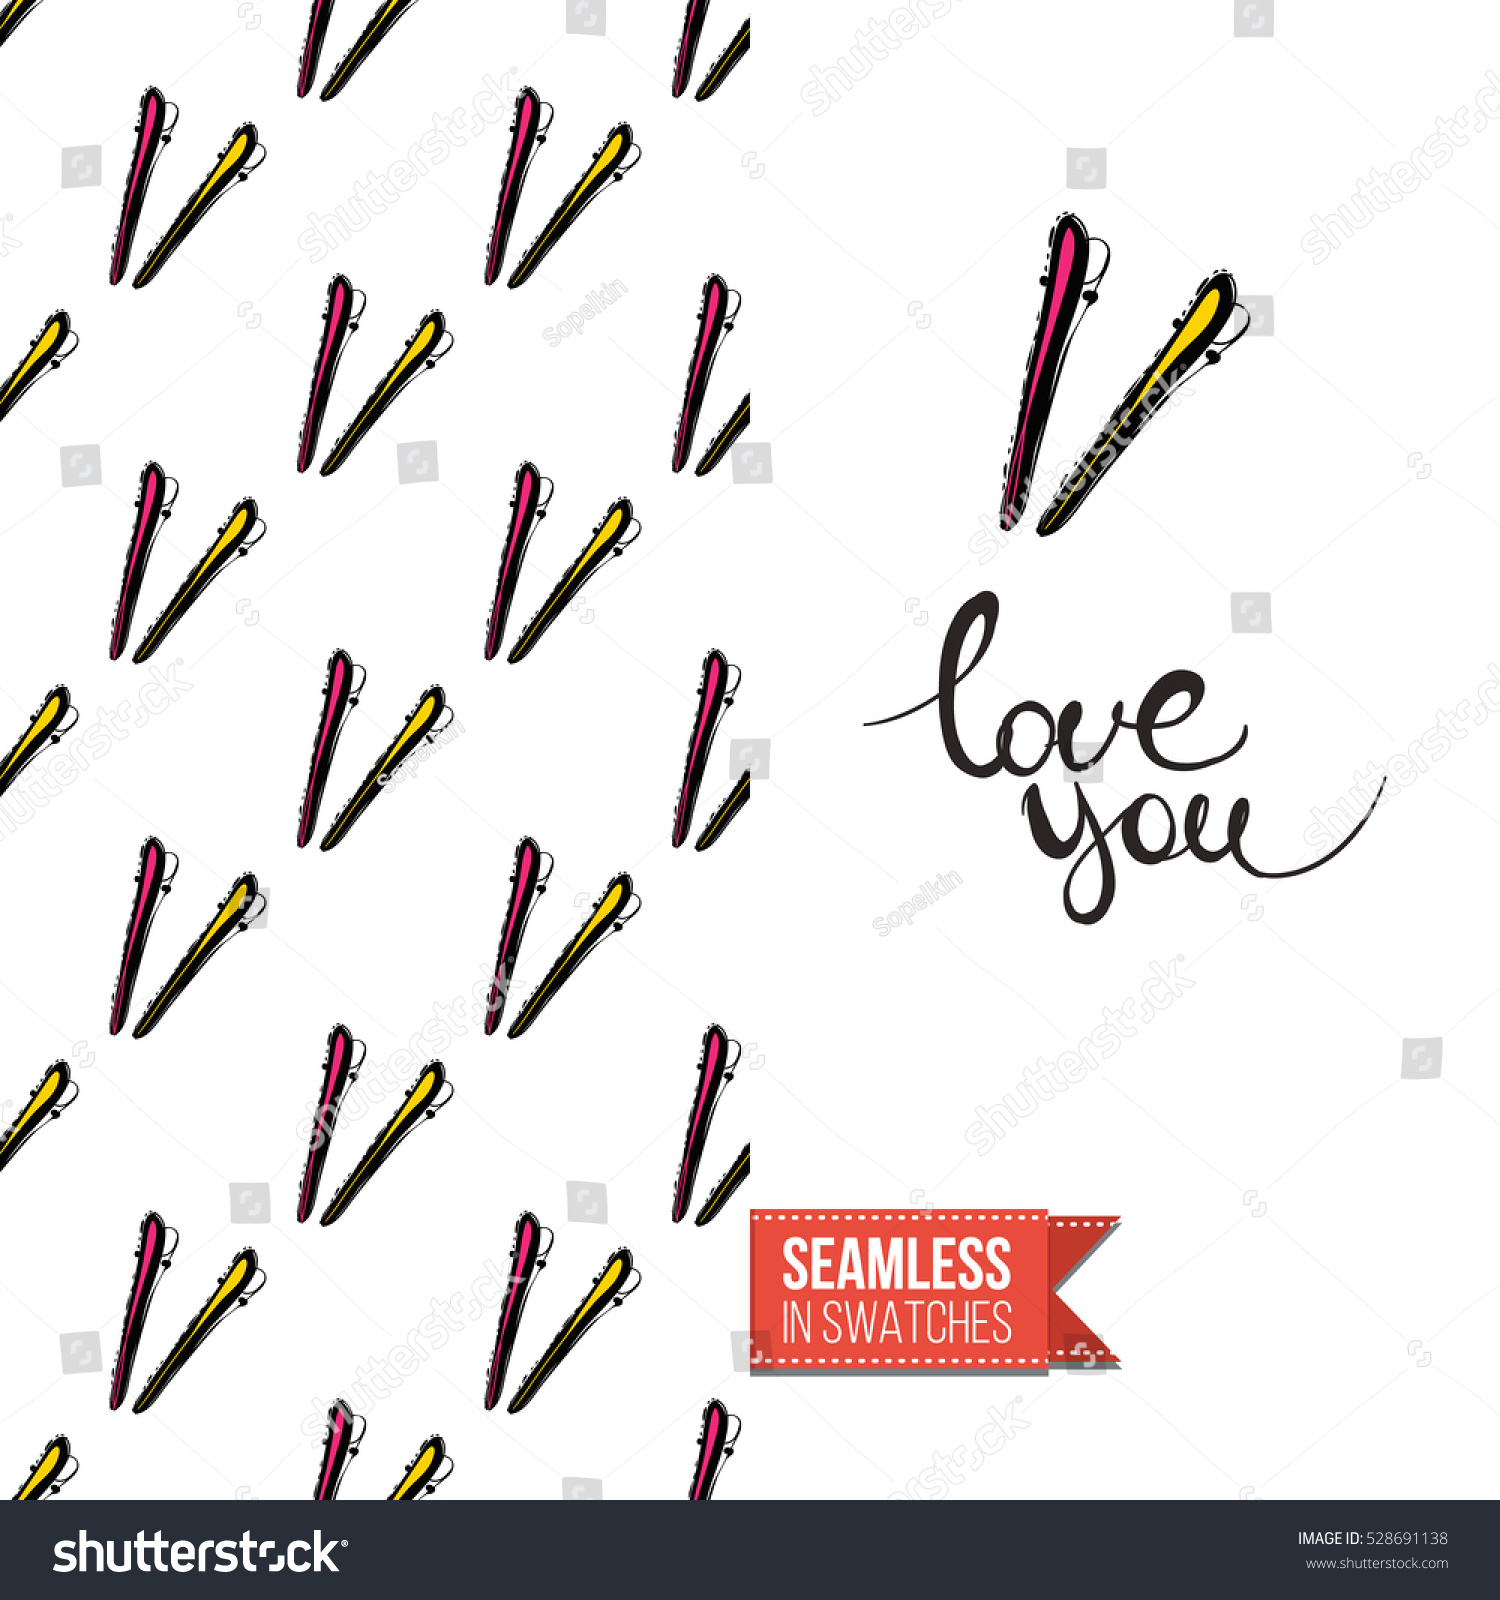 Greeting Card Promotion Beauty Salon Seamless Stock Vector 528691138